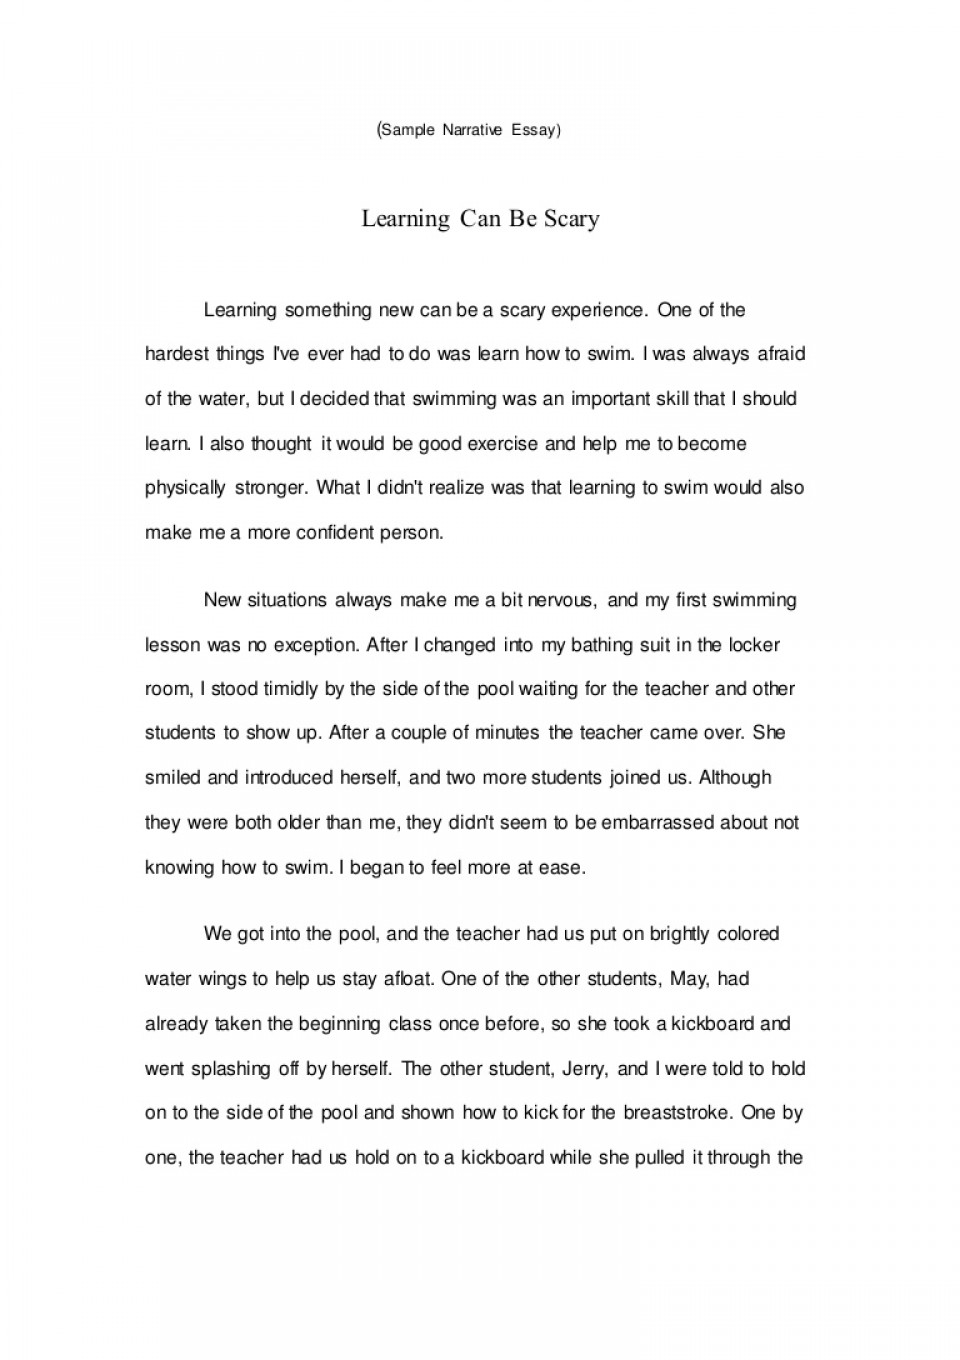 017 Essay Example Samplenarrativeessay Lva1 App6891 Thumbnail Writing Amazing A Narrative About Being Judged Quizlet Powerpoint 960